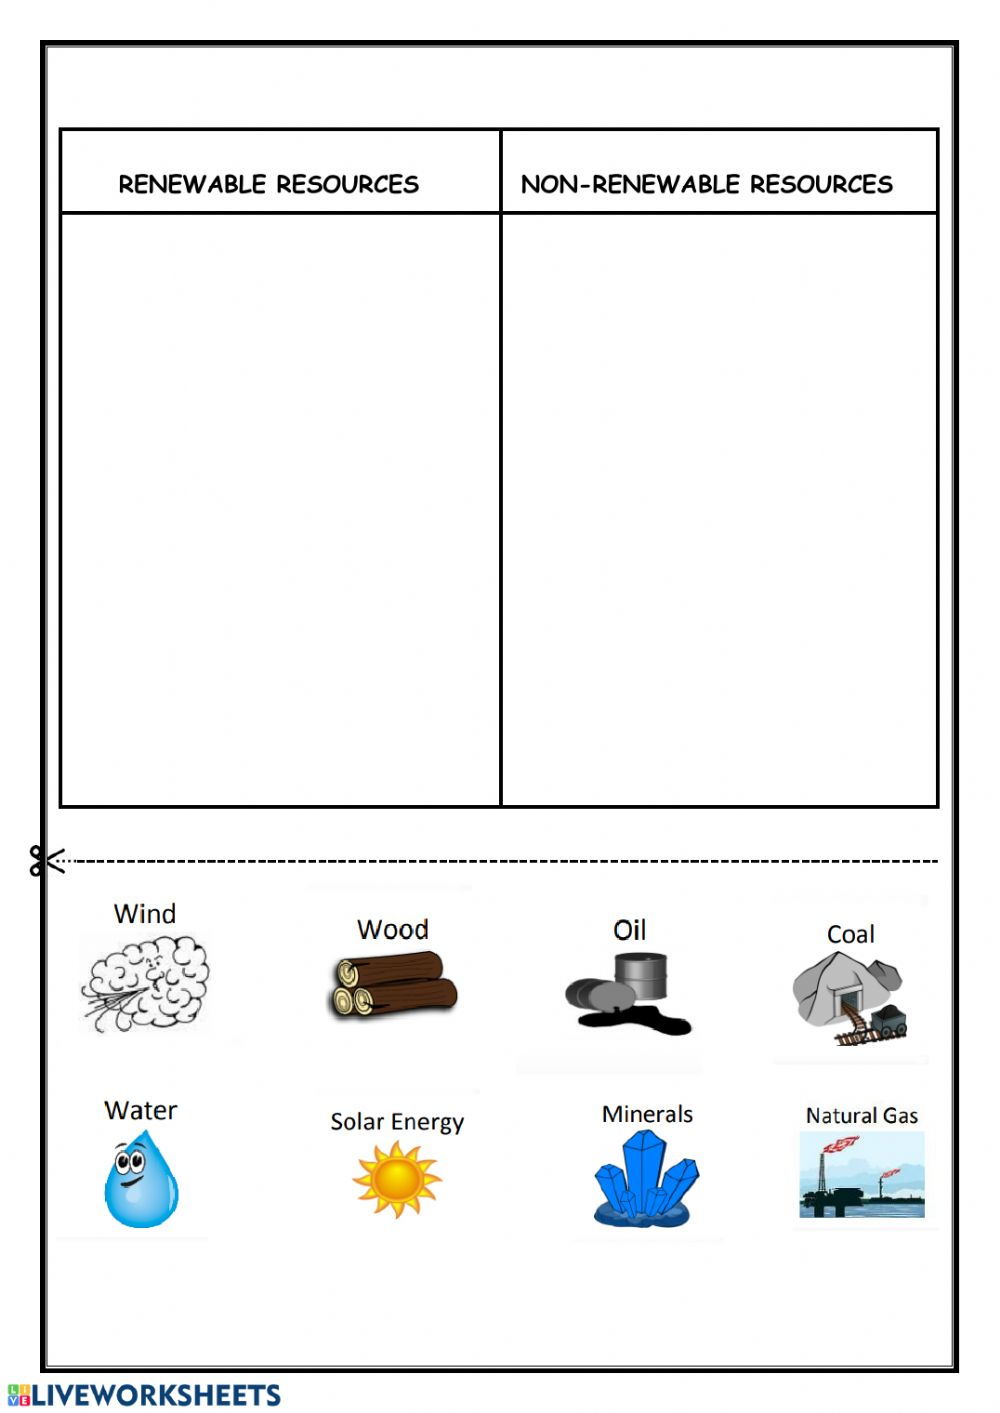 hight resolution of RENEWABLE RESOURCES and NON-RENEWABLE RESOURCES worksheet